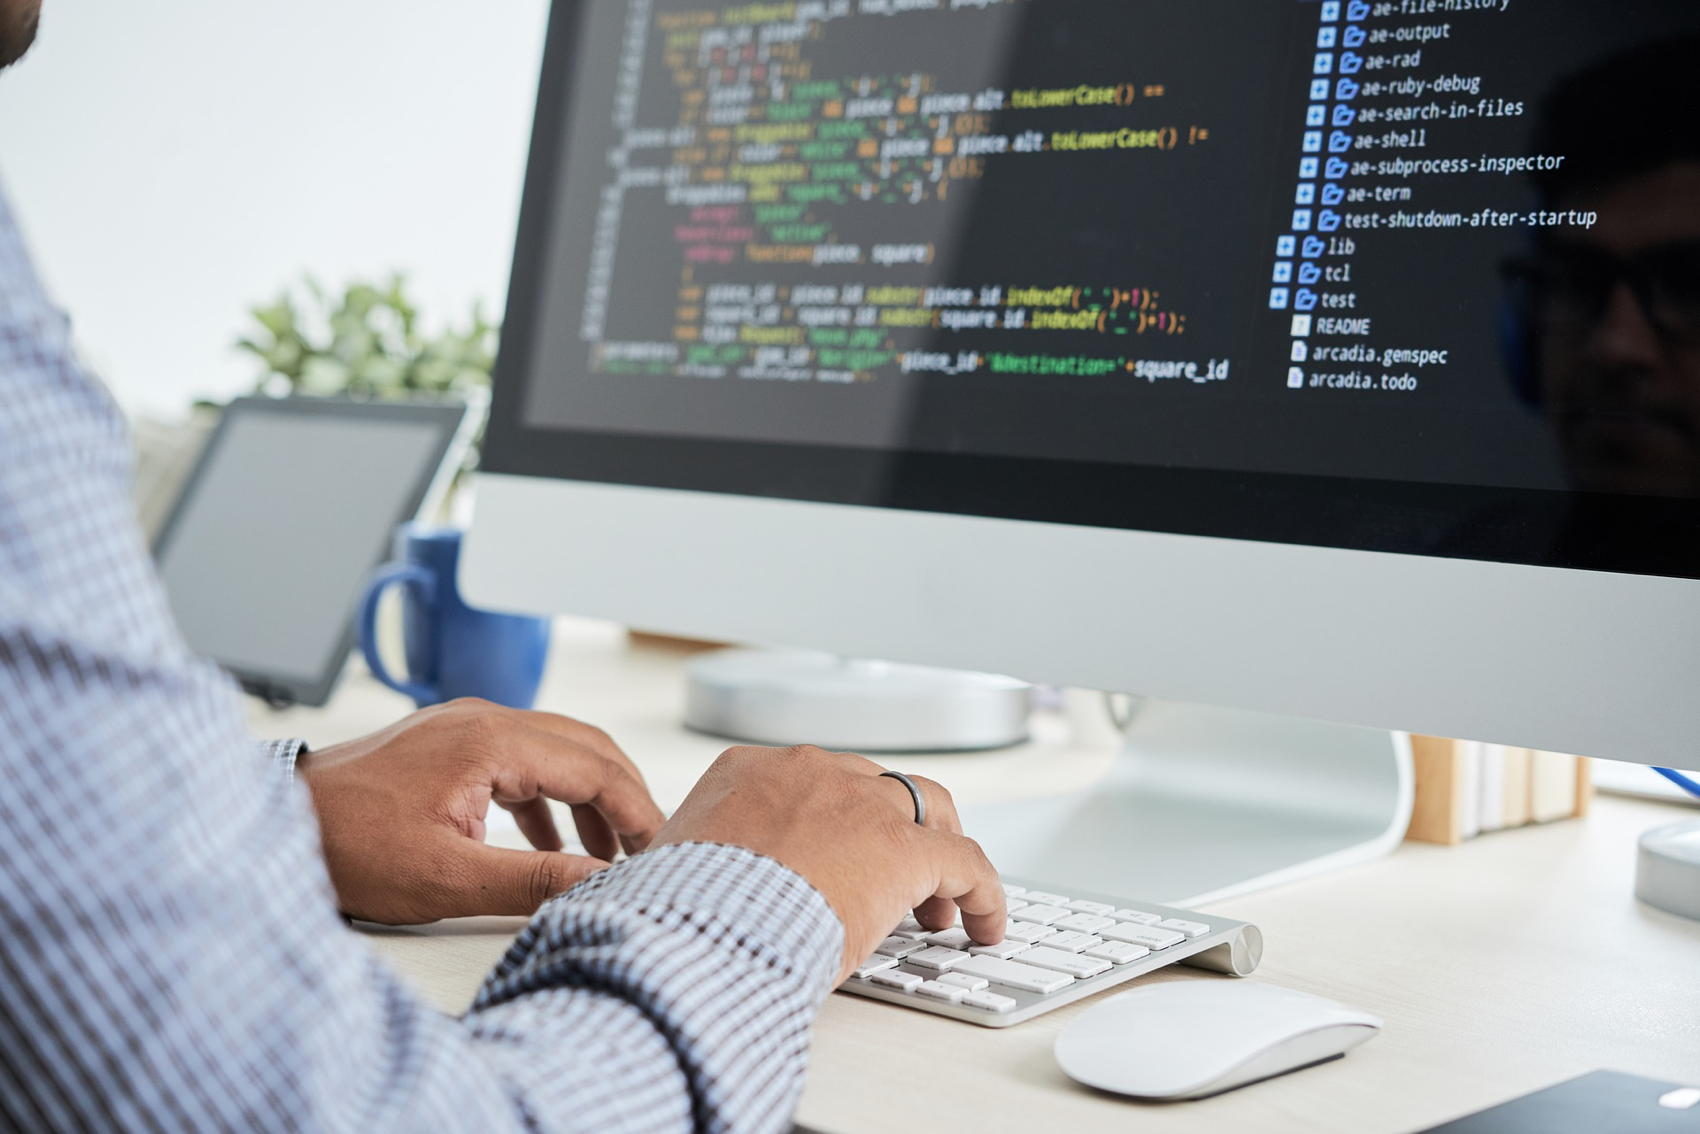 Software Development - Image by Innova Labs